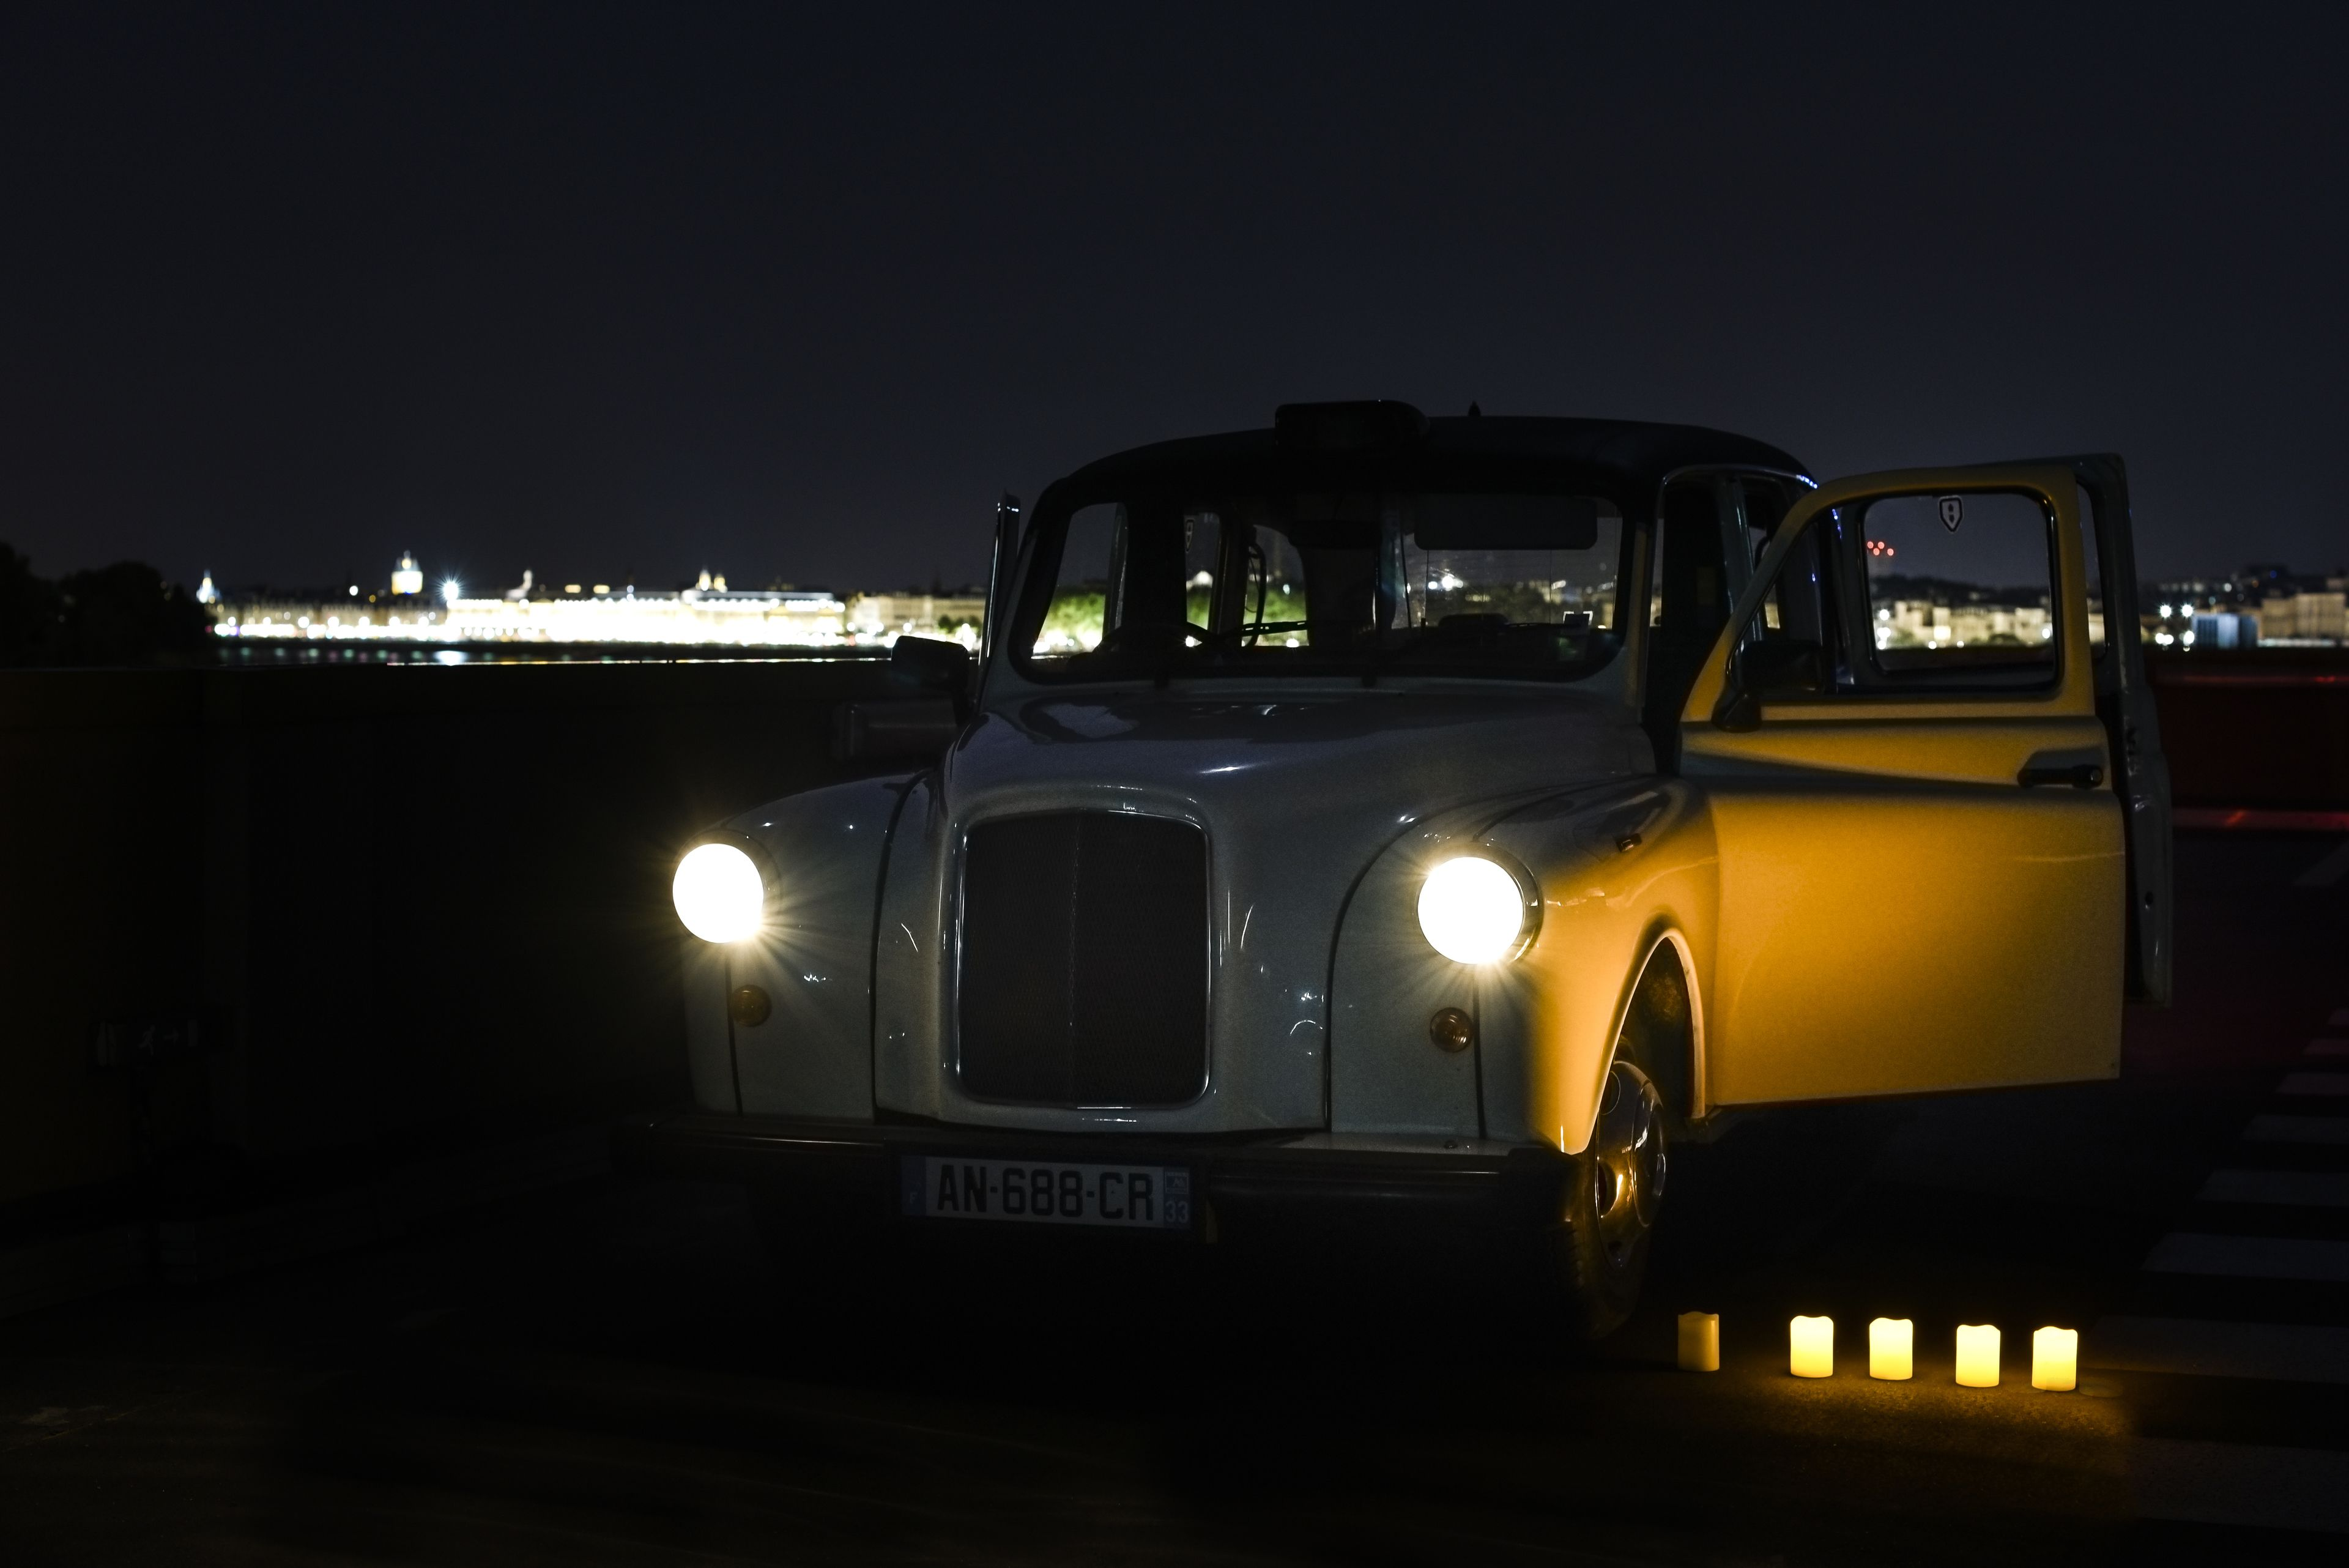 Bordeaux in an old fancy car at night